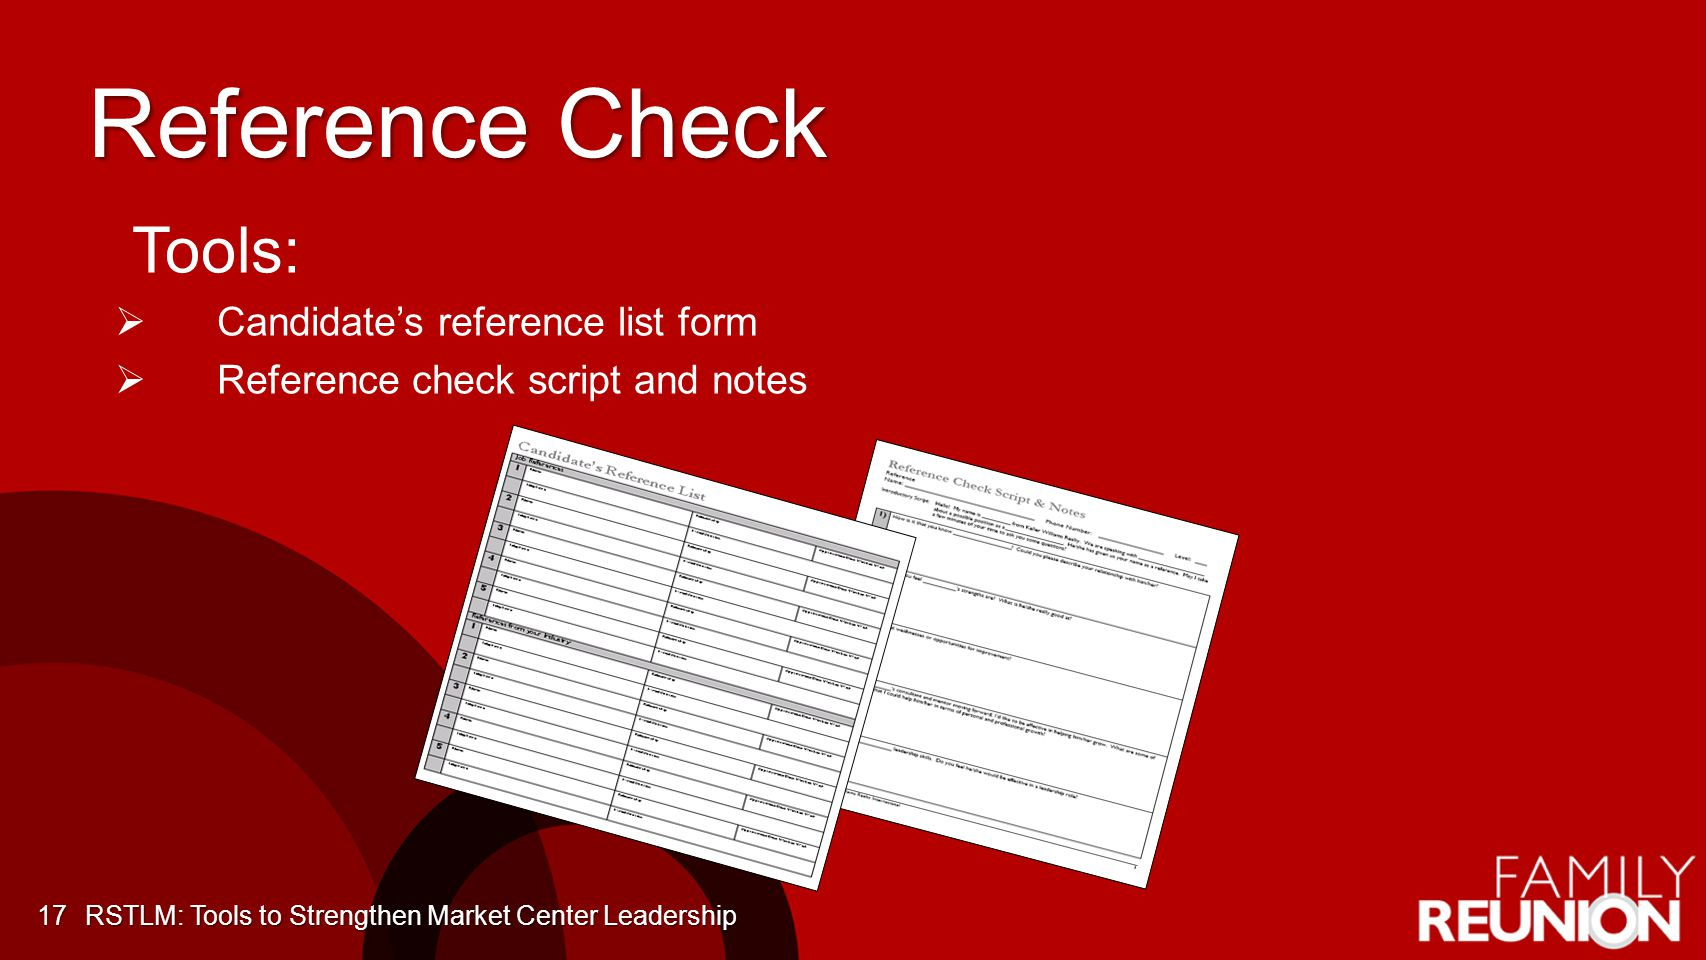 Reference Check Tools: Candidate's reference list form